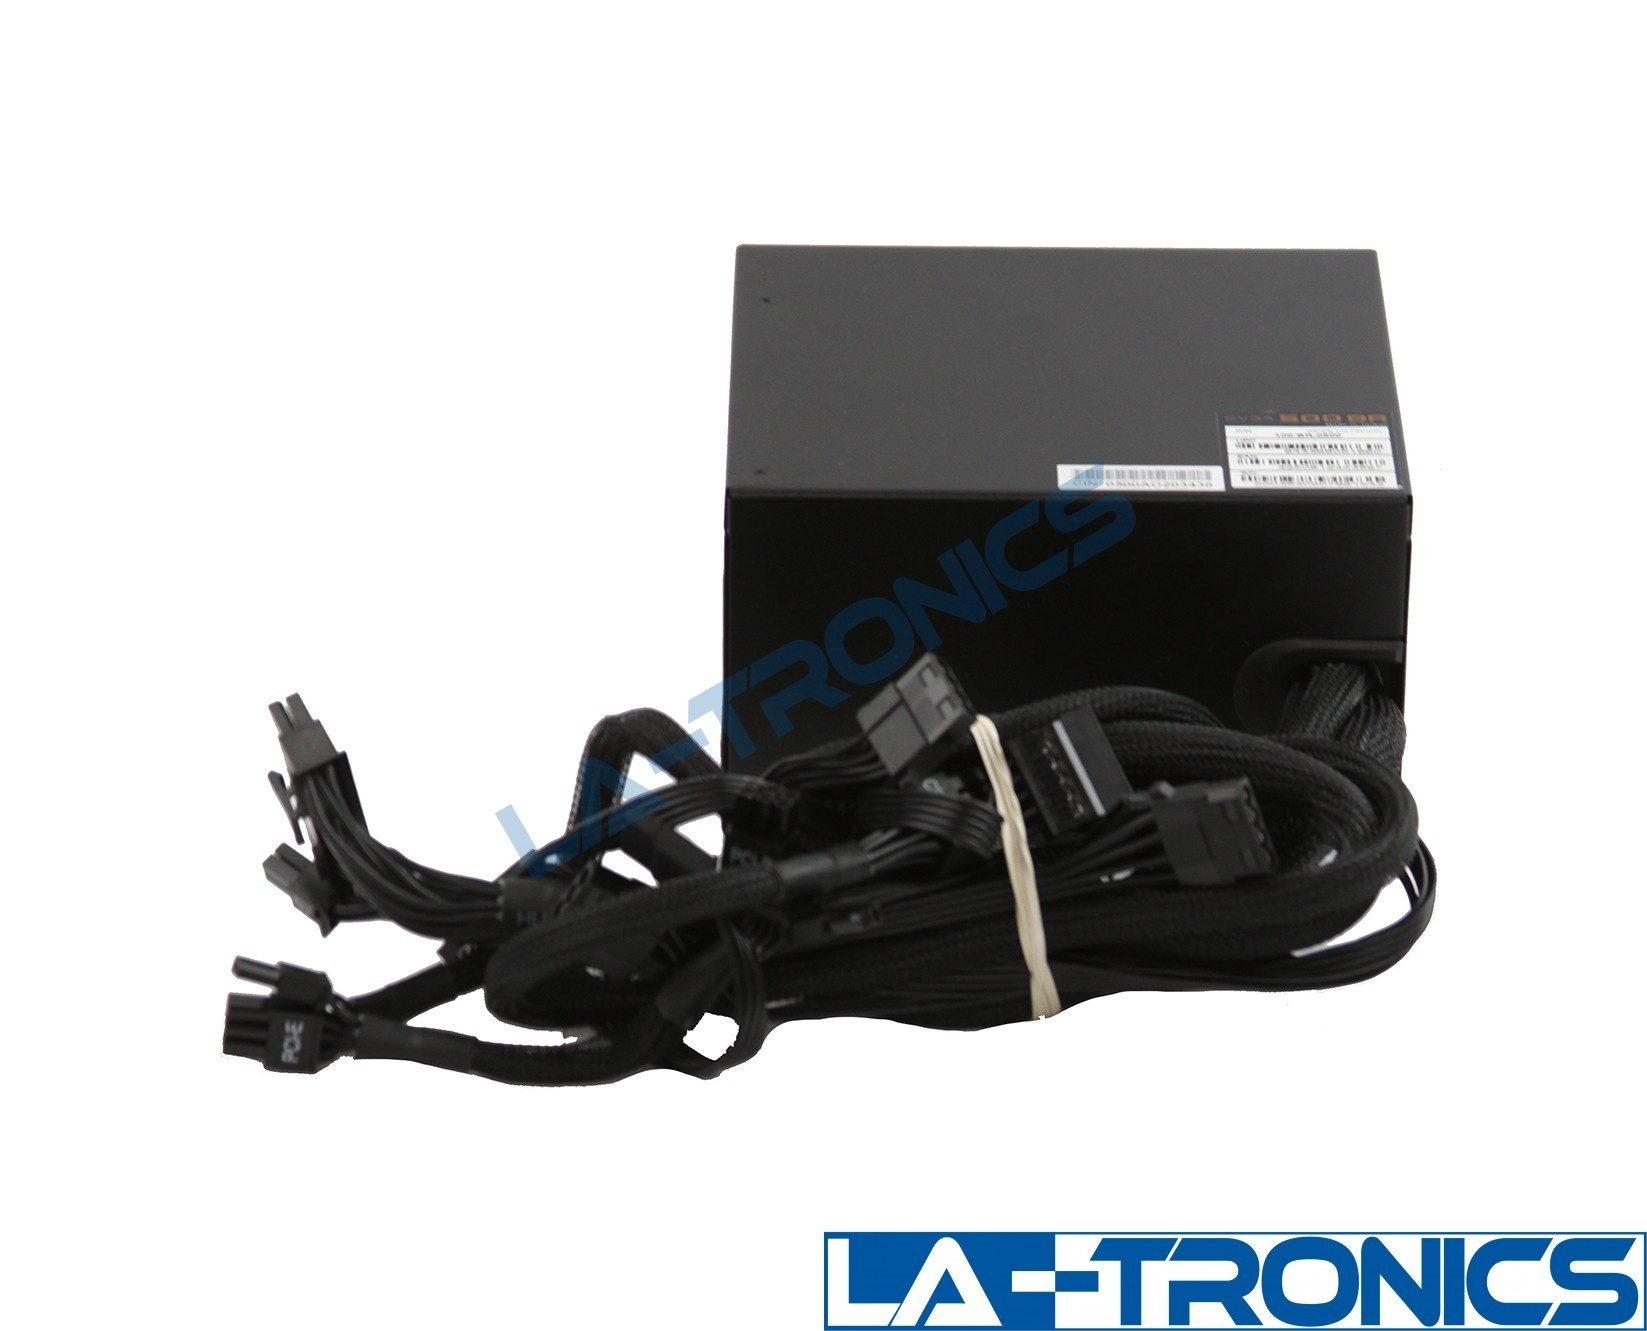 EVGA 500 BR 500W SLI CrossFire 80 PLUS BRONZE Non-Modular Power Supply